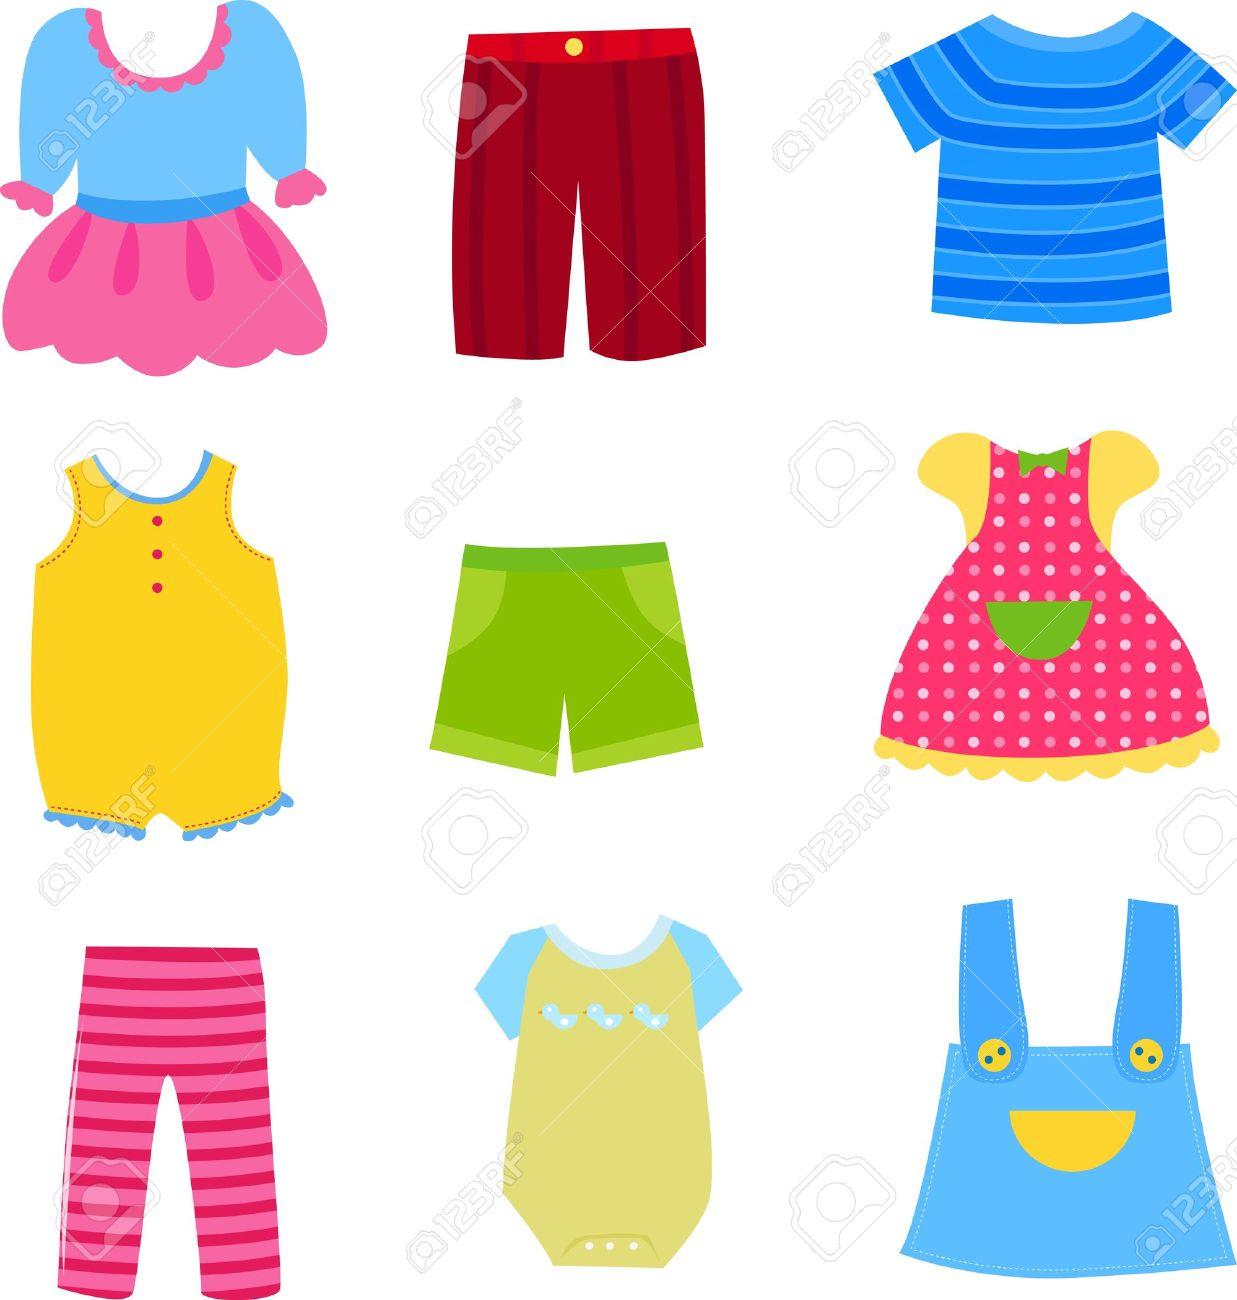 Baby And Children Clothes Collection Royalty Free Cliparts Vectors